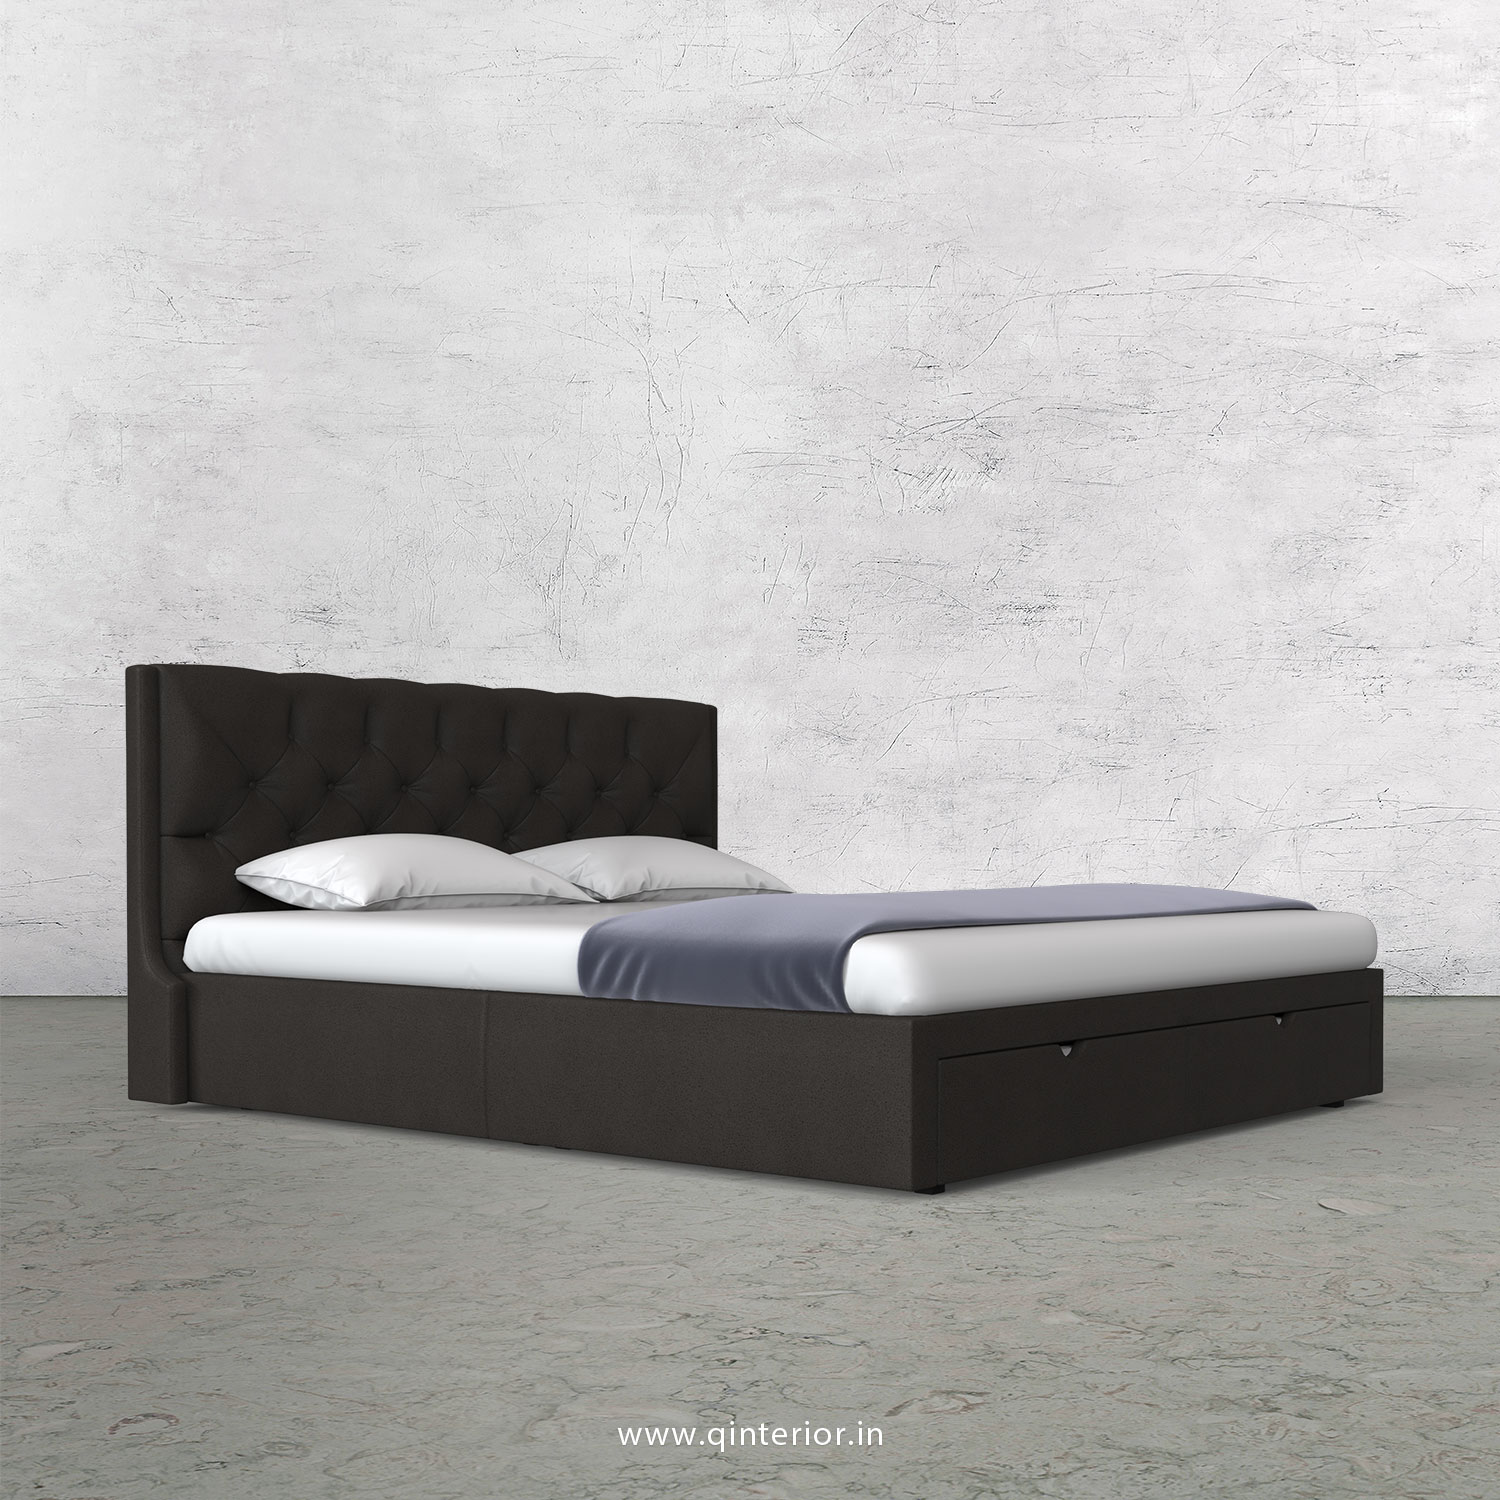 Scorpius King Size Storage Bed in Fab Leather Fabric - KBD001 FL15